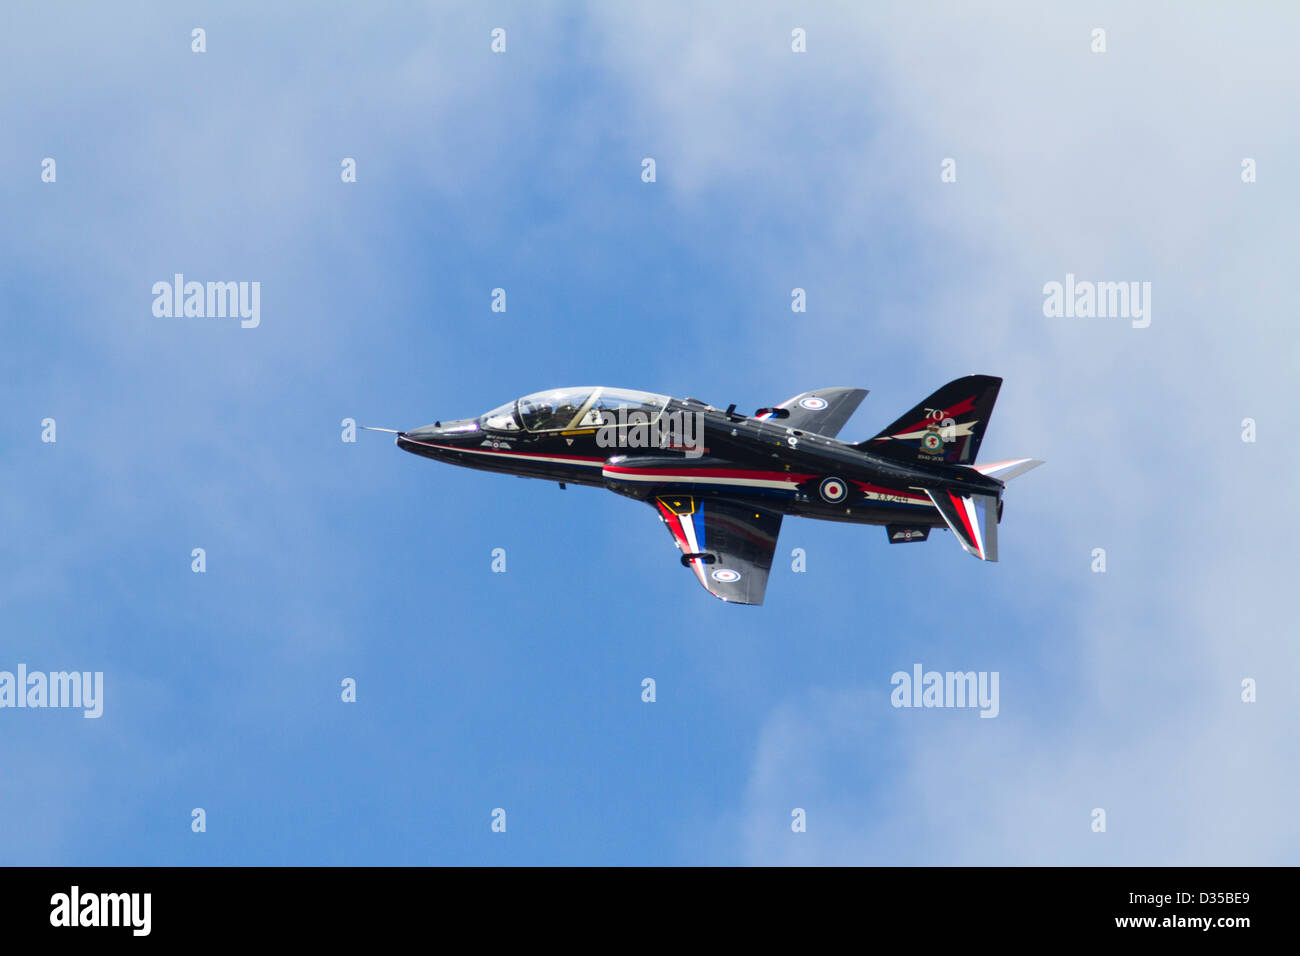 BAE Systems Hawk Trainer Aircraft in Flight - Stock Image